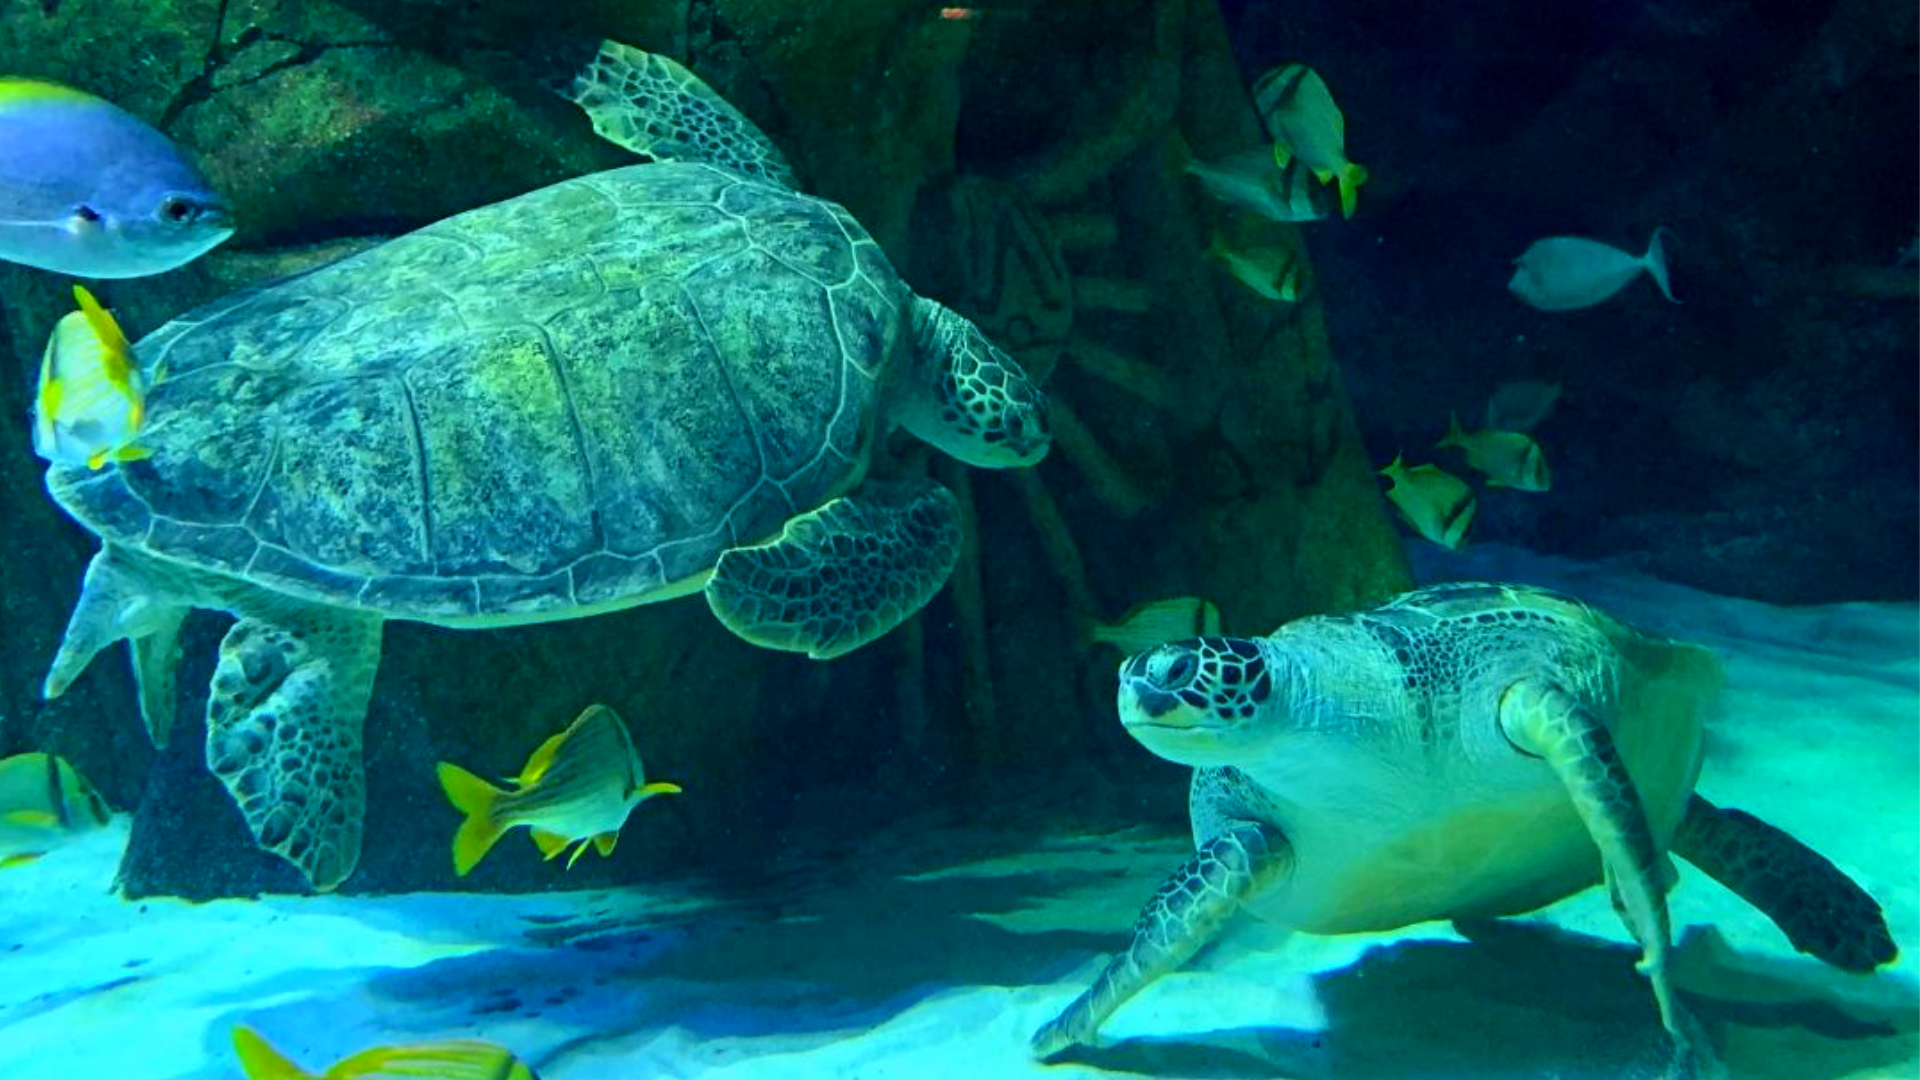 Cammy and Ernie the green sea turtles at SEA LIFE Manchester